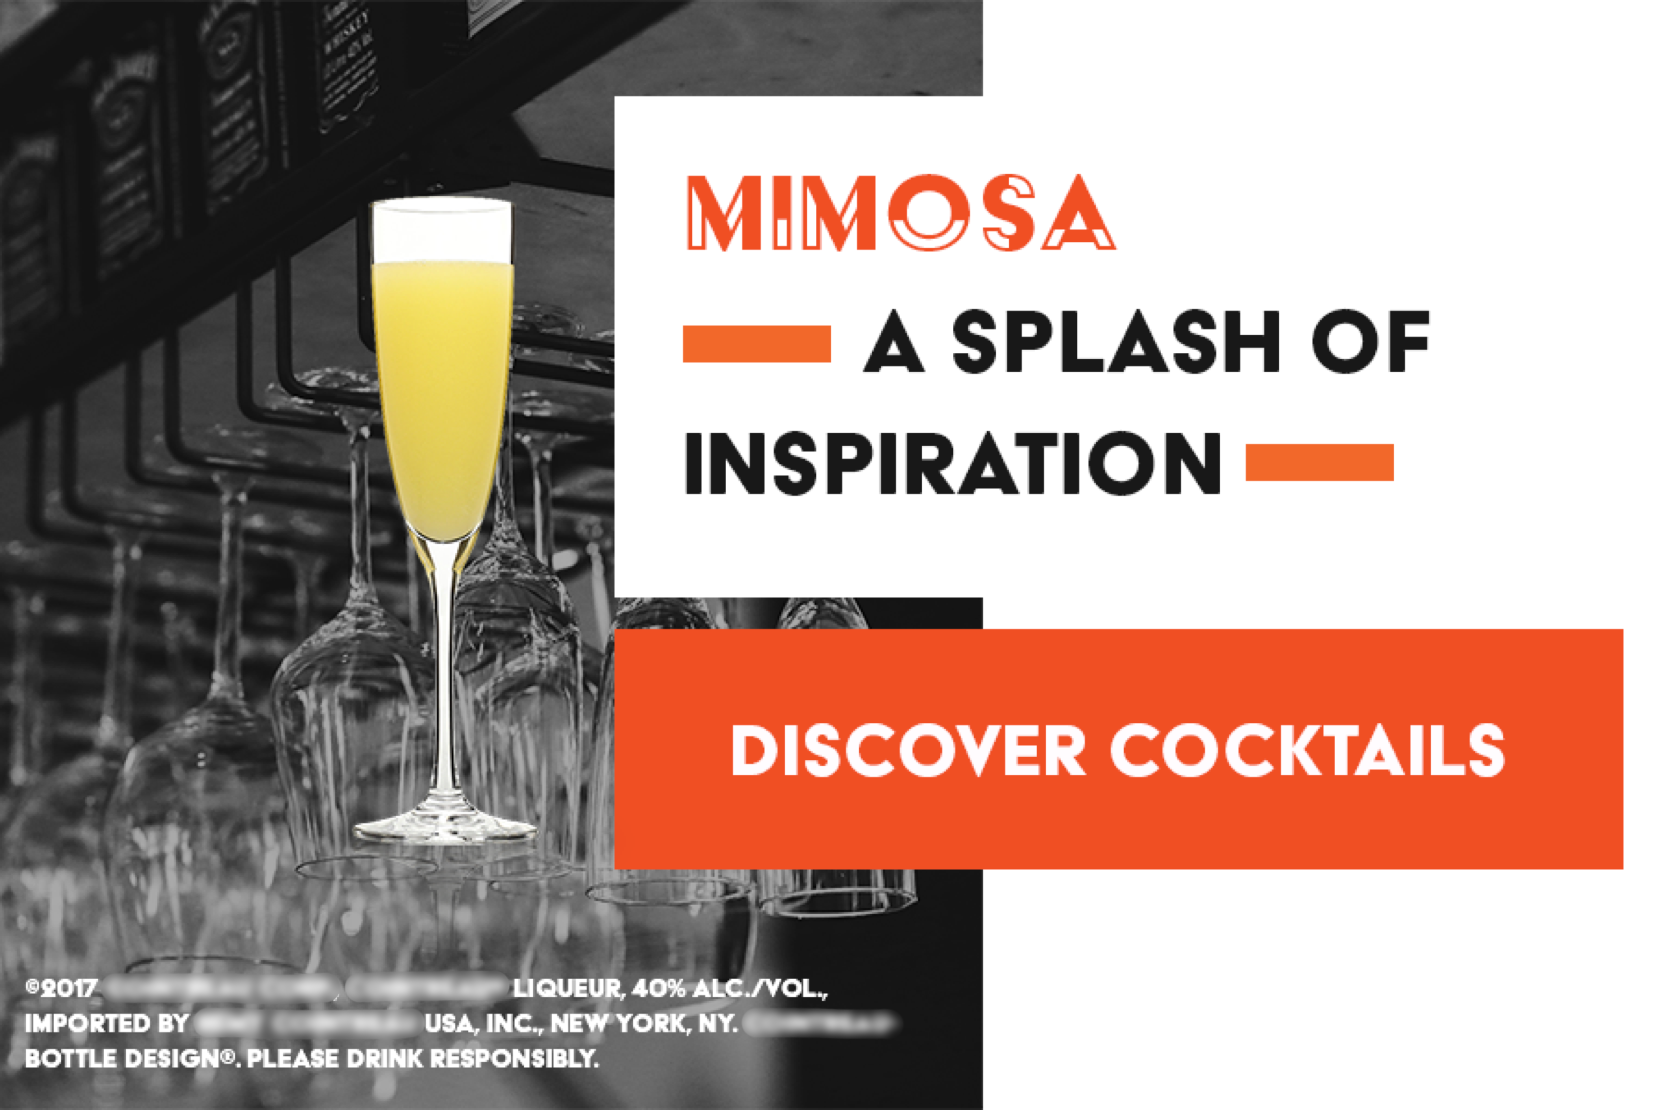 Discover Cocktails Mimosa Pairings Ad Unit